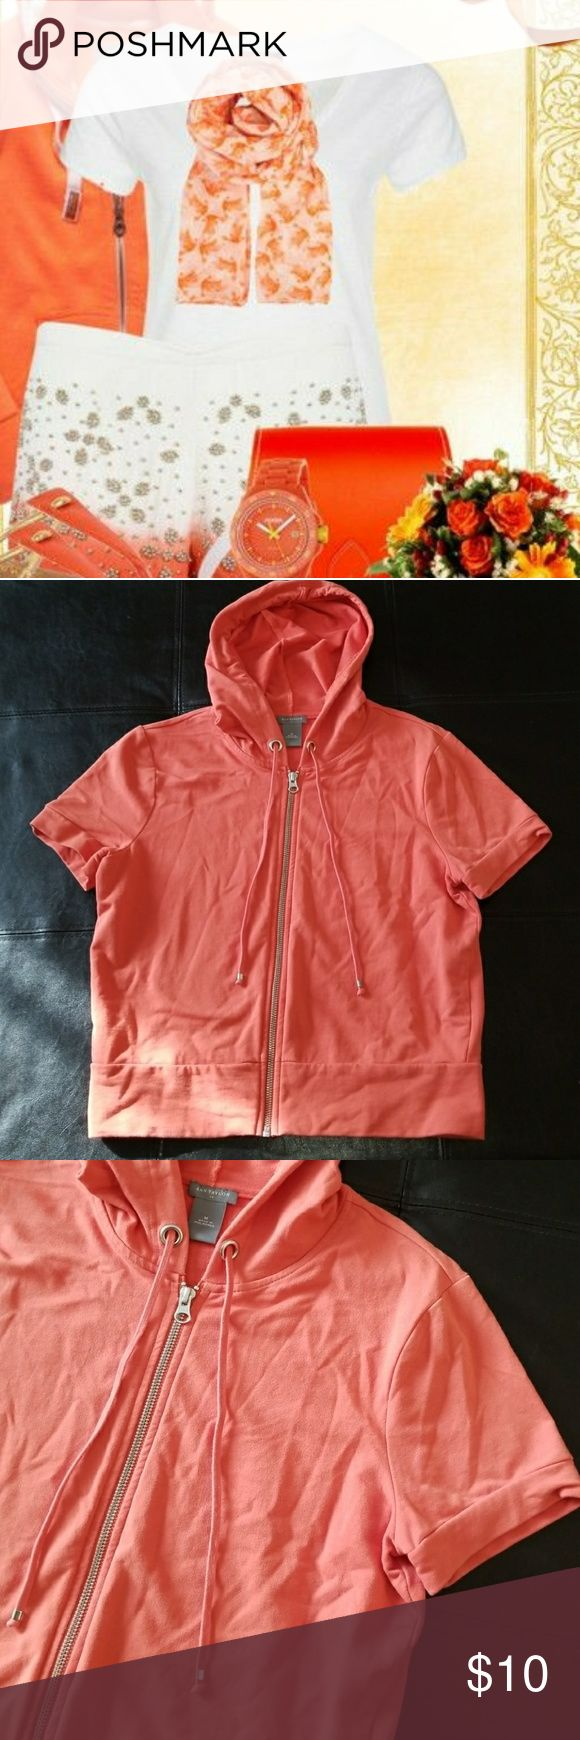 Ann Taylor Short Sleeve Zip Up Hoodie Orange Ann Taylor short sleeve zip up hoodie. Good used condition. First picture not of product, but of styling idea. Size Medium. (Bin 6) Ann Taylor Tops Sweatshirts & Hoodies